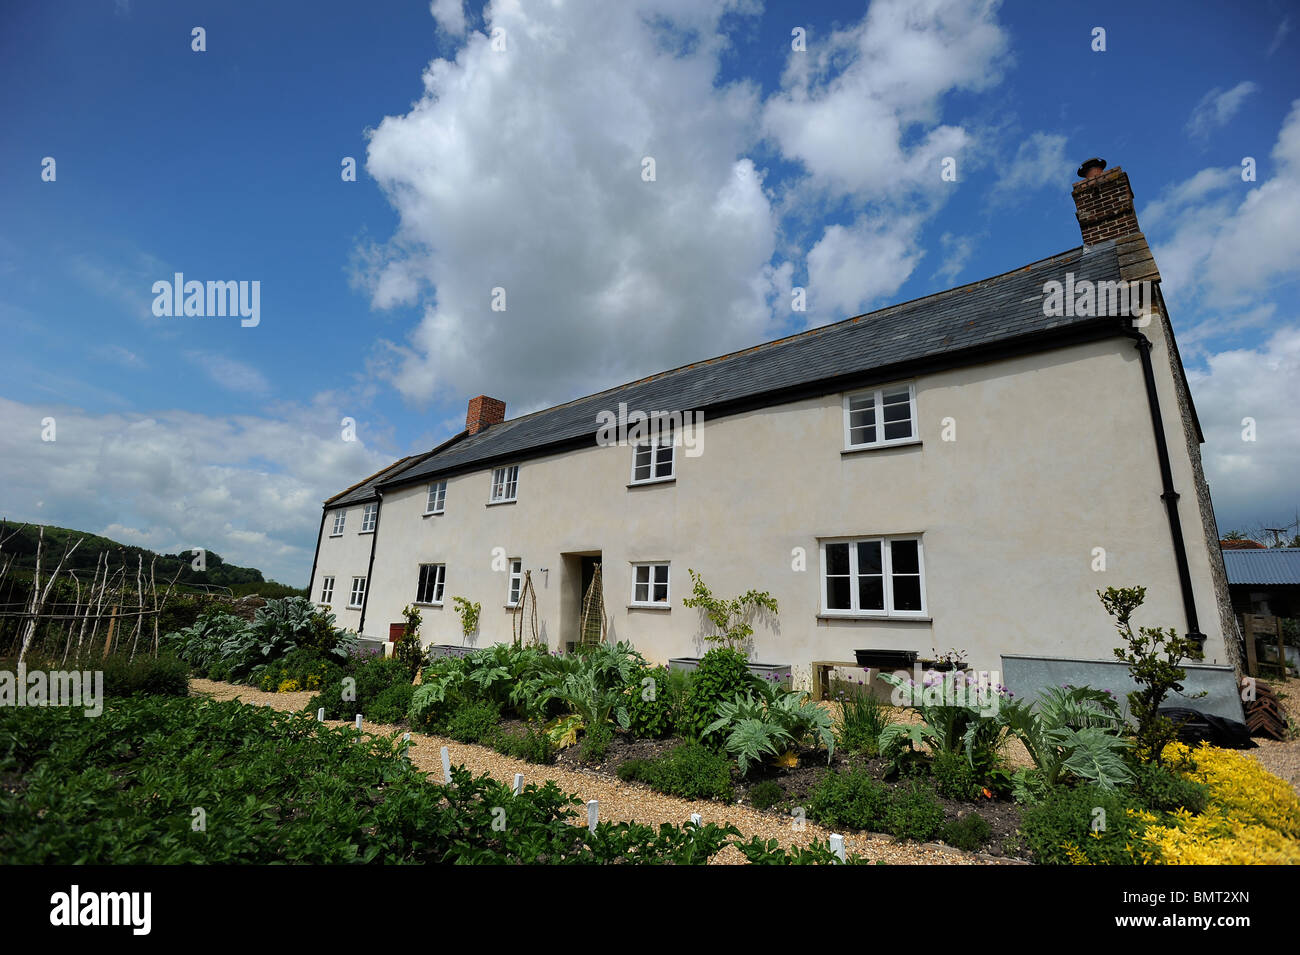 River Cottage HQ, headquarters of TV Chef Hugh Fearnley Whittingstall, near Axminster, Devon - Stock Image